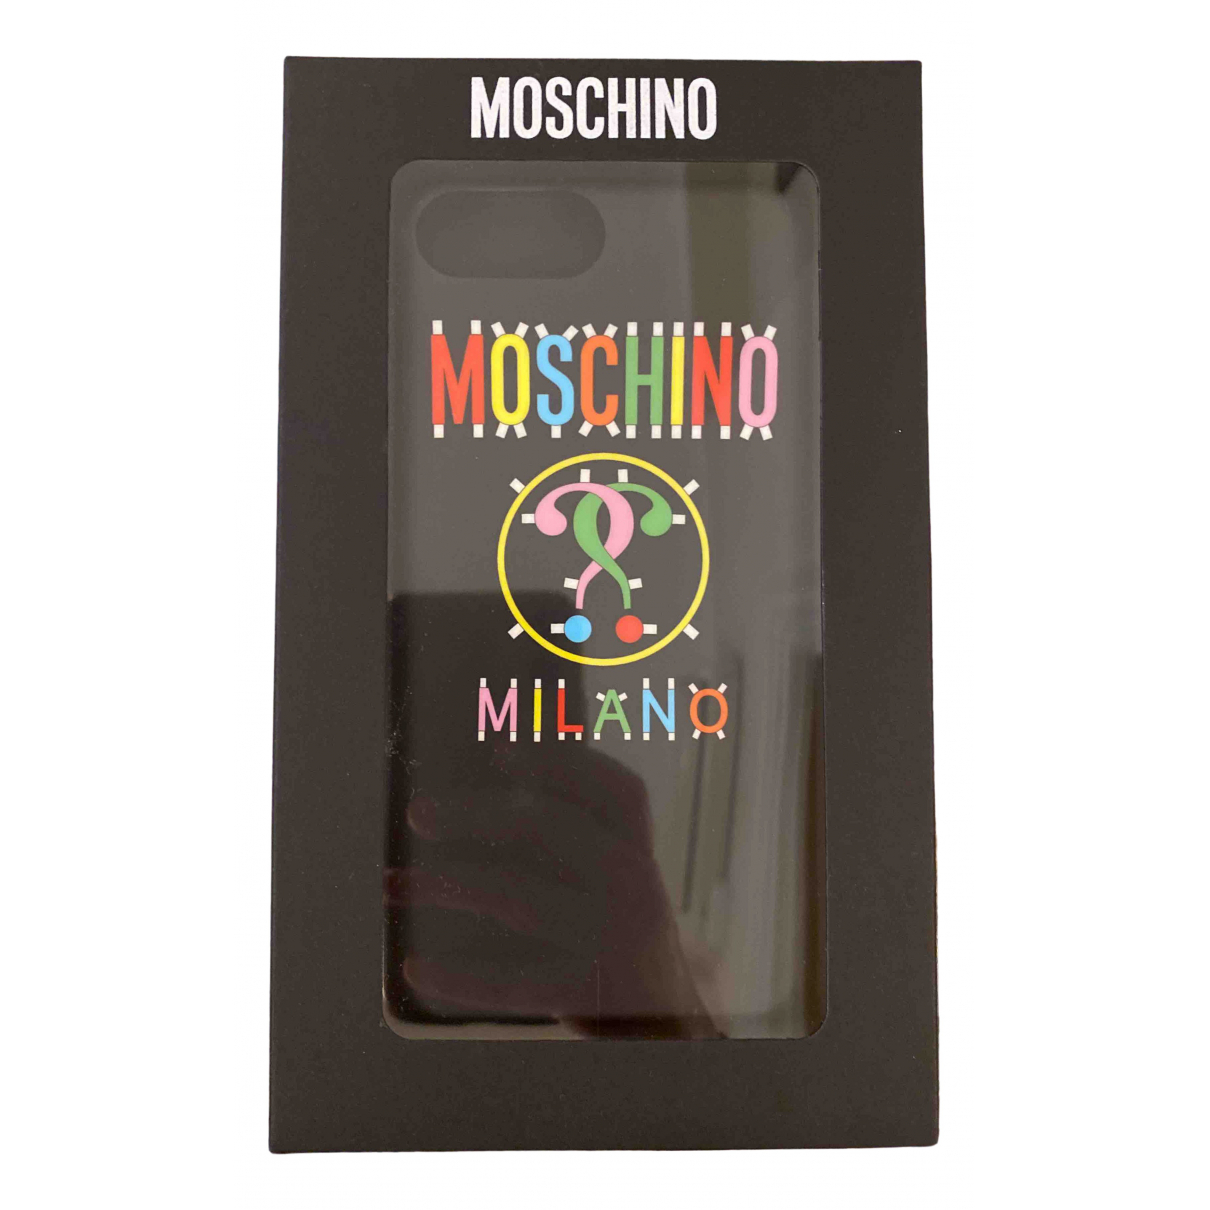 Moschino N Black Accessories for Life & Living N